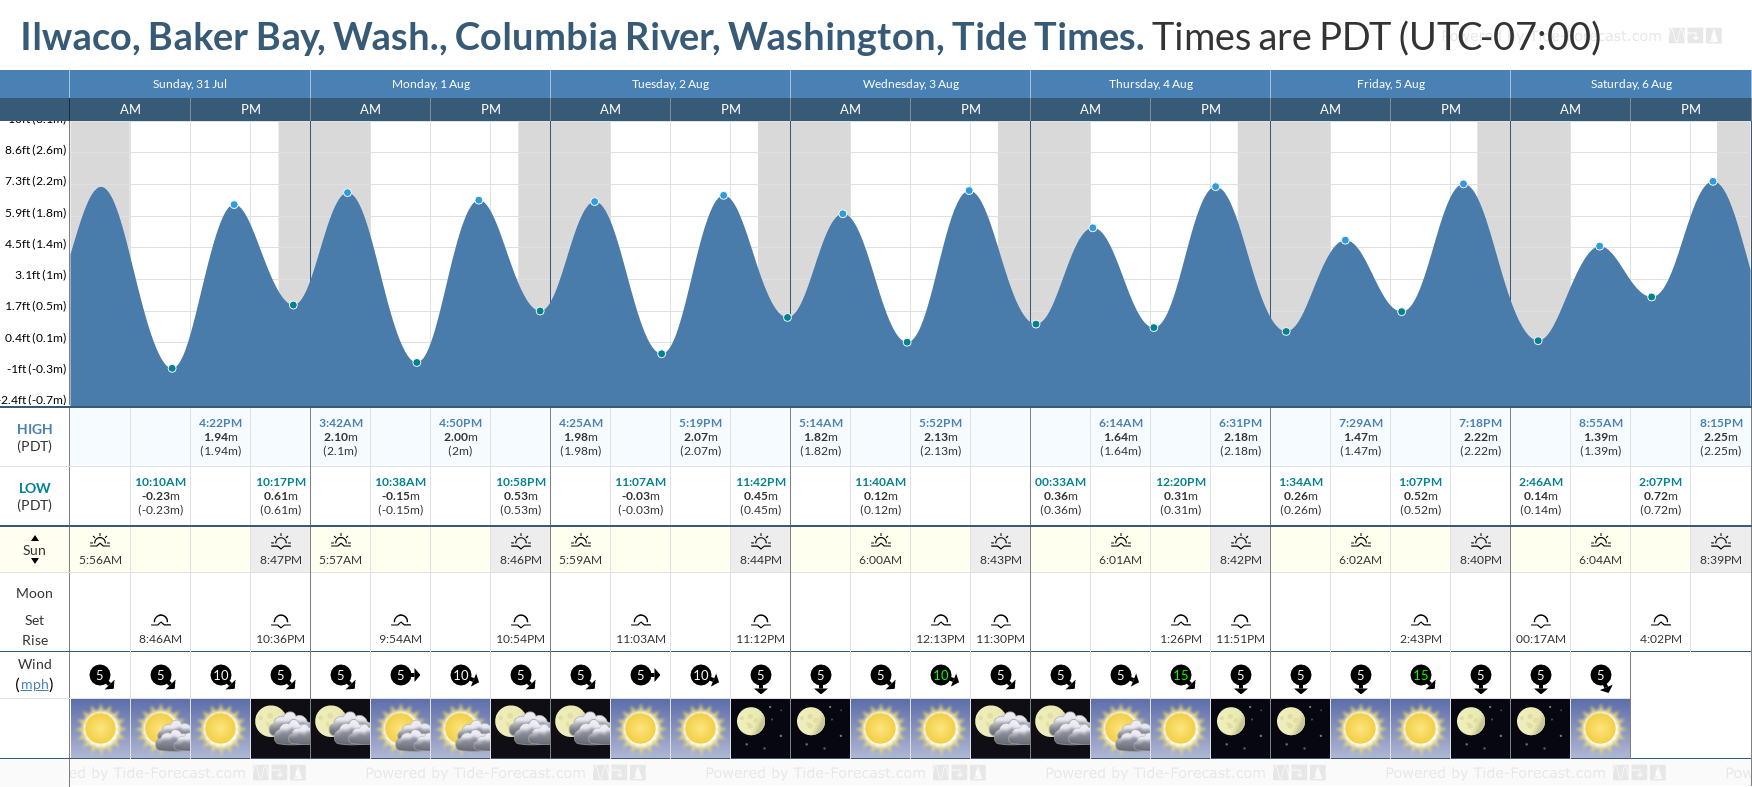 Ilwaco, Baker Bay, Wash., Columbia River, Washington Tide Chart including high and low tide tide times for the next 7 days